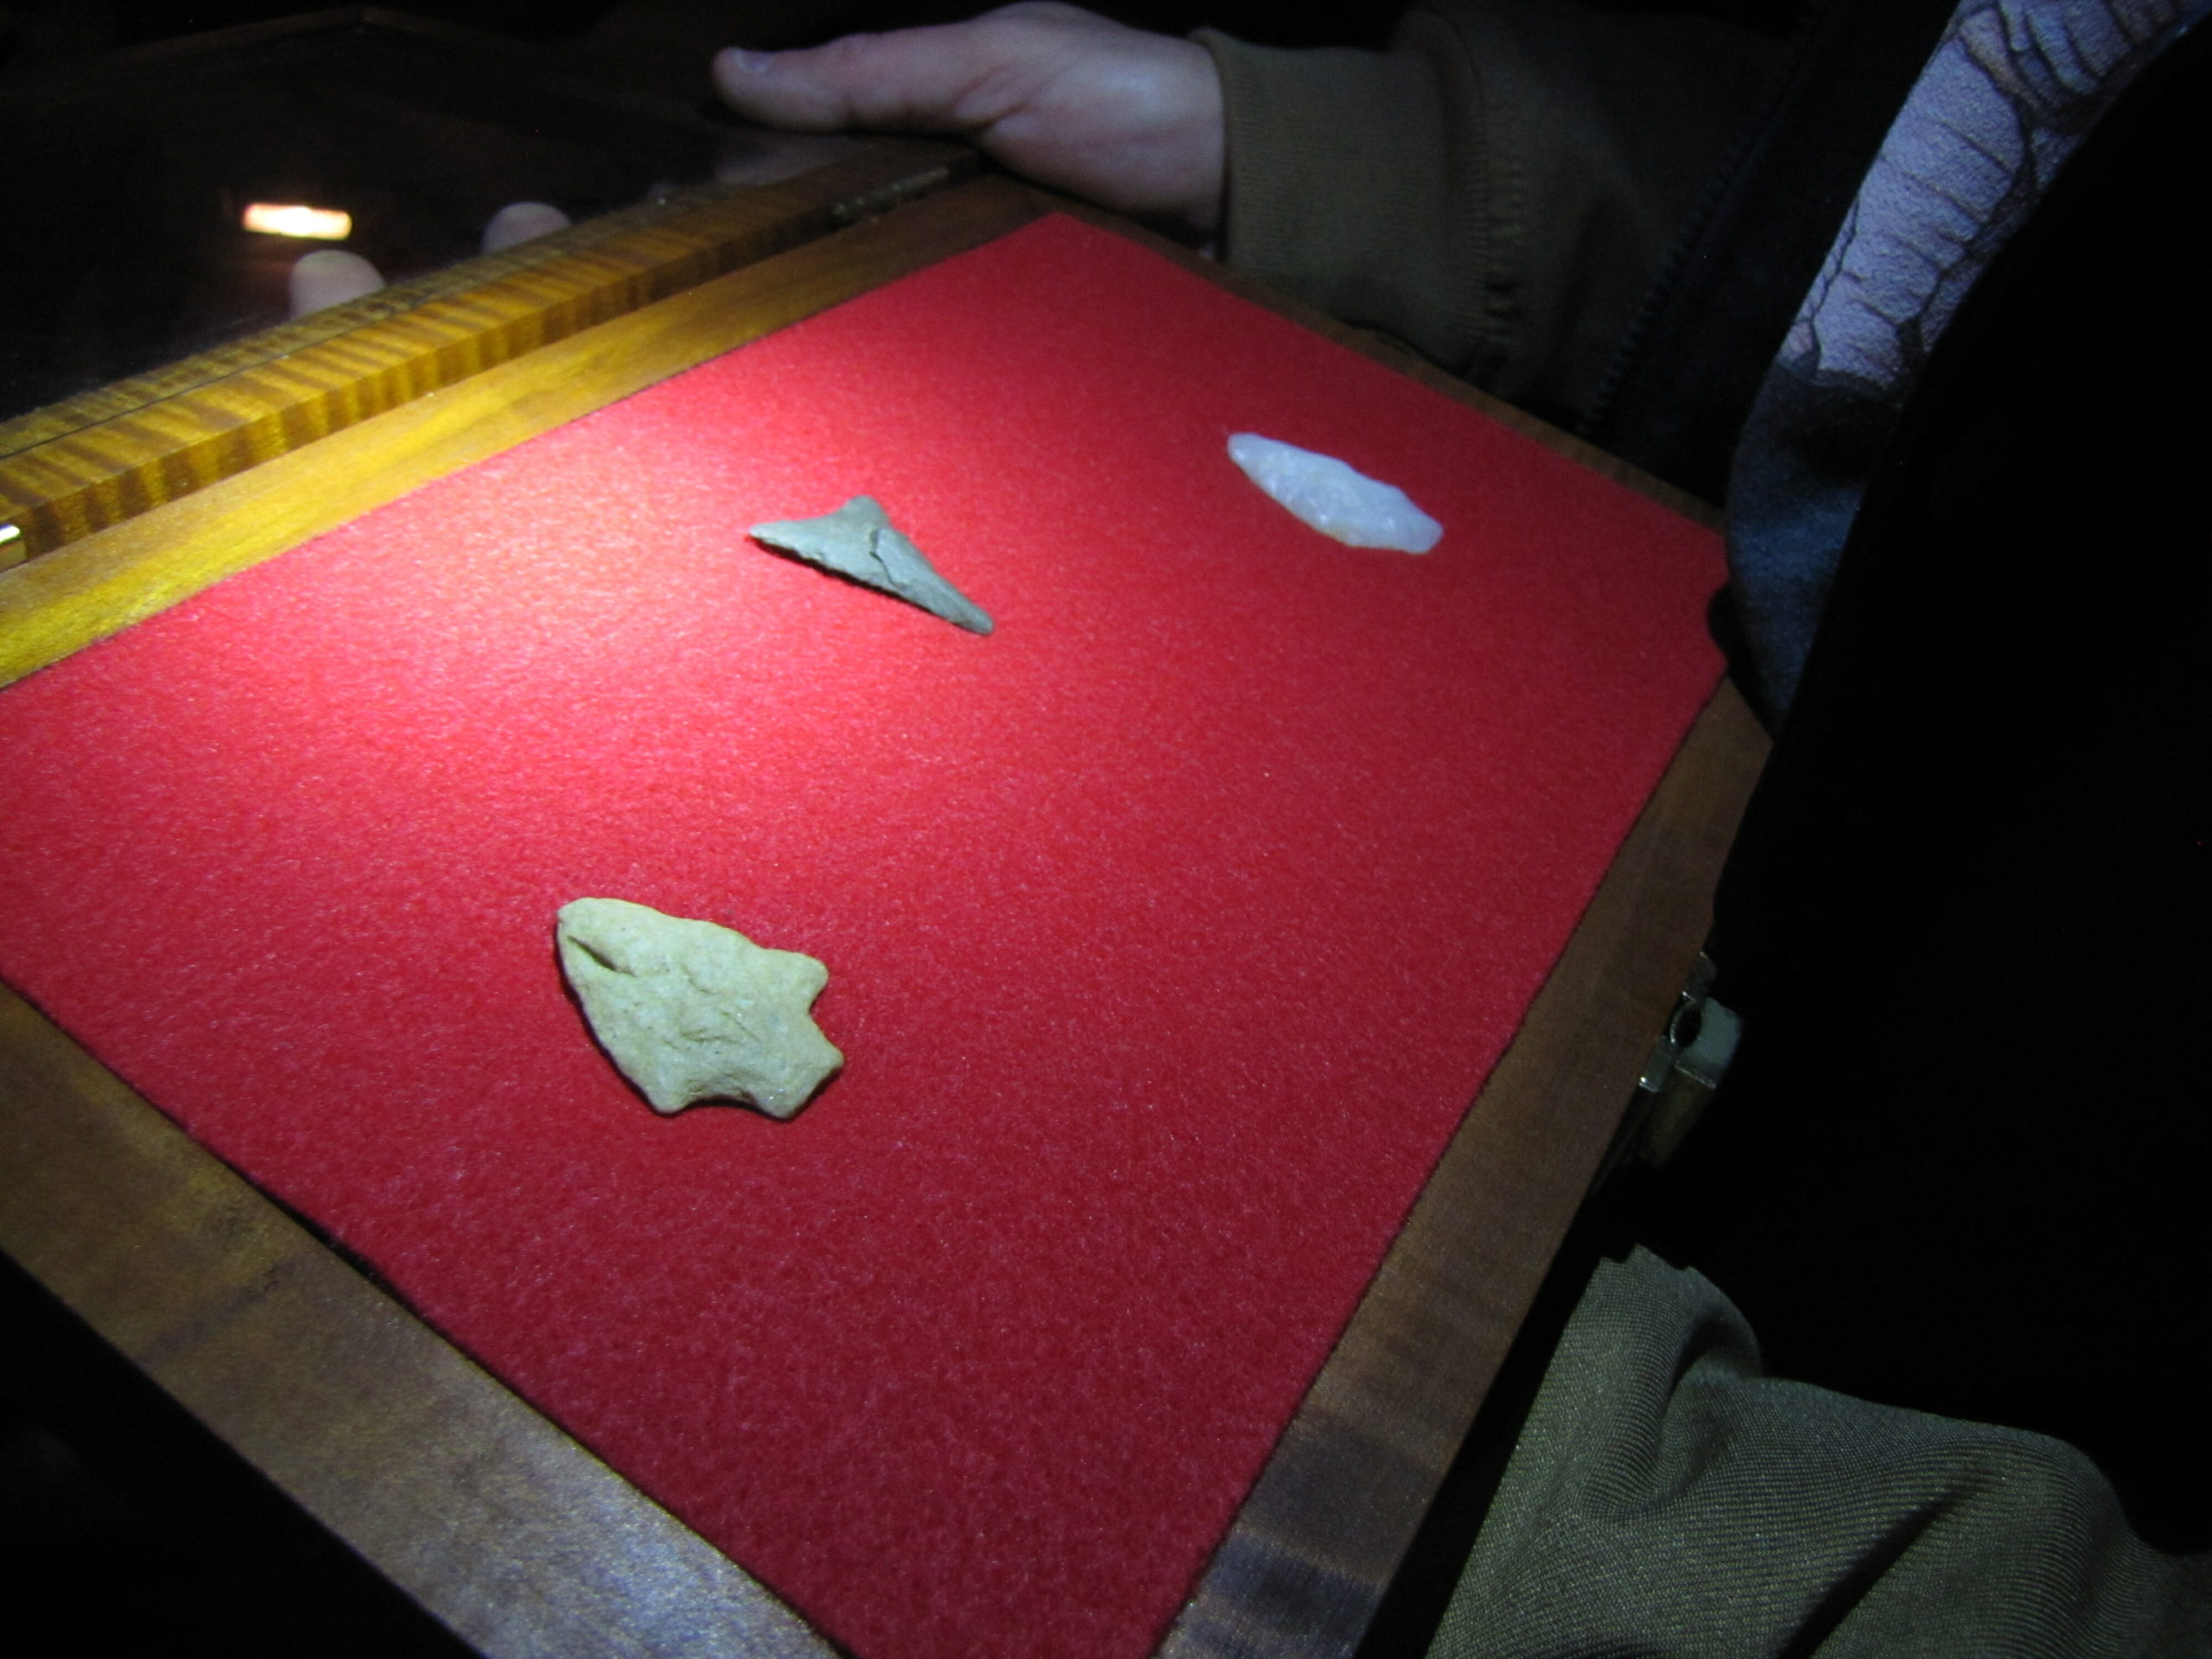 Orson Frisbie has found more than 40 ancient Native American arrow and spear points and other artifacts, many of them thousands of years old, while scouring local beaches.